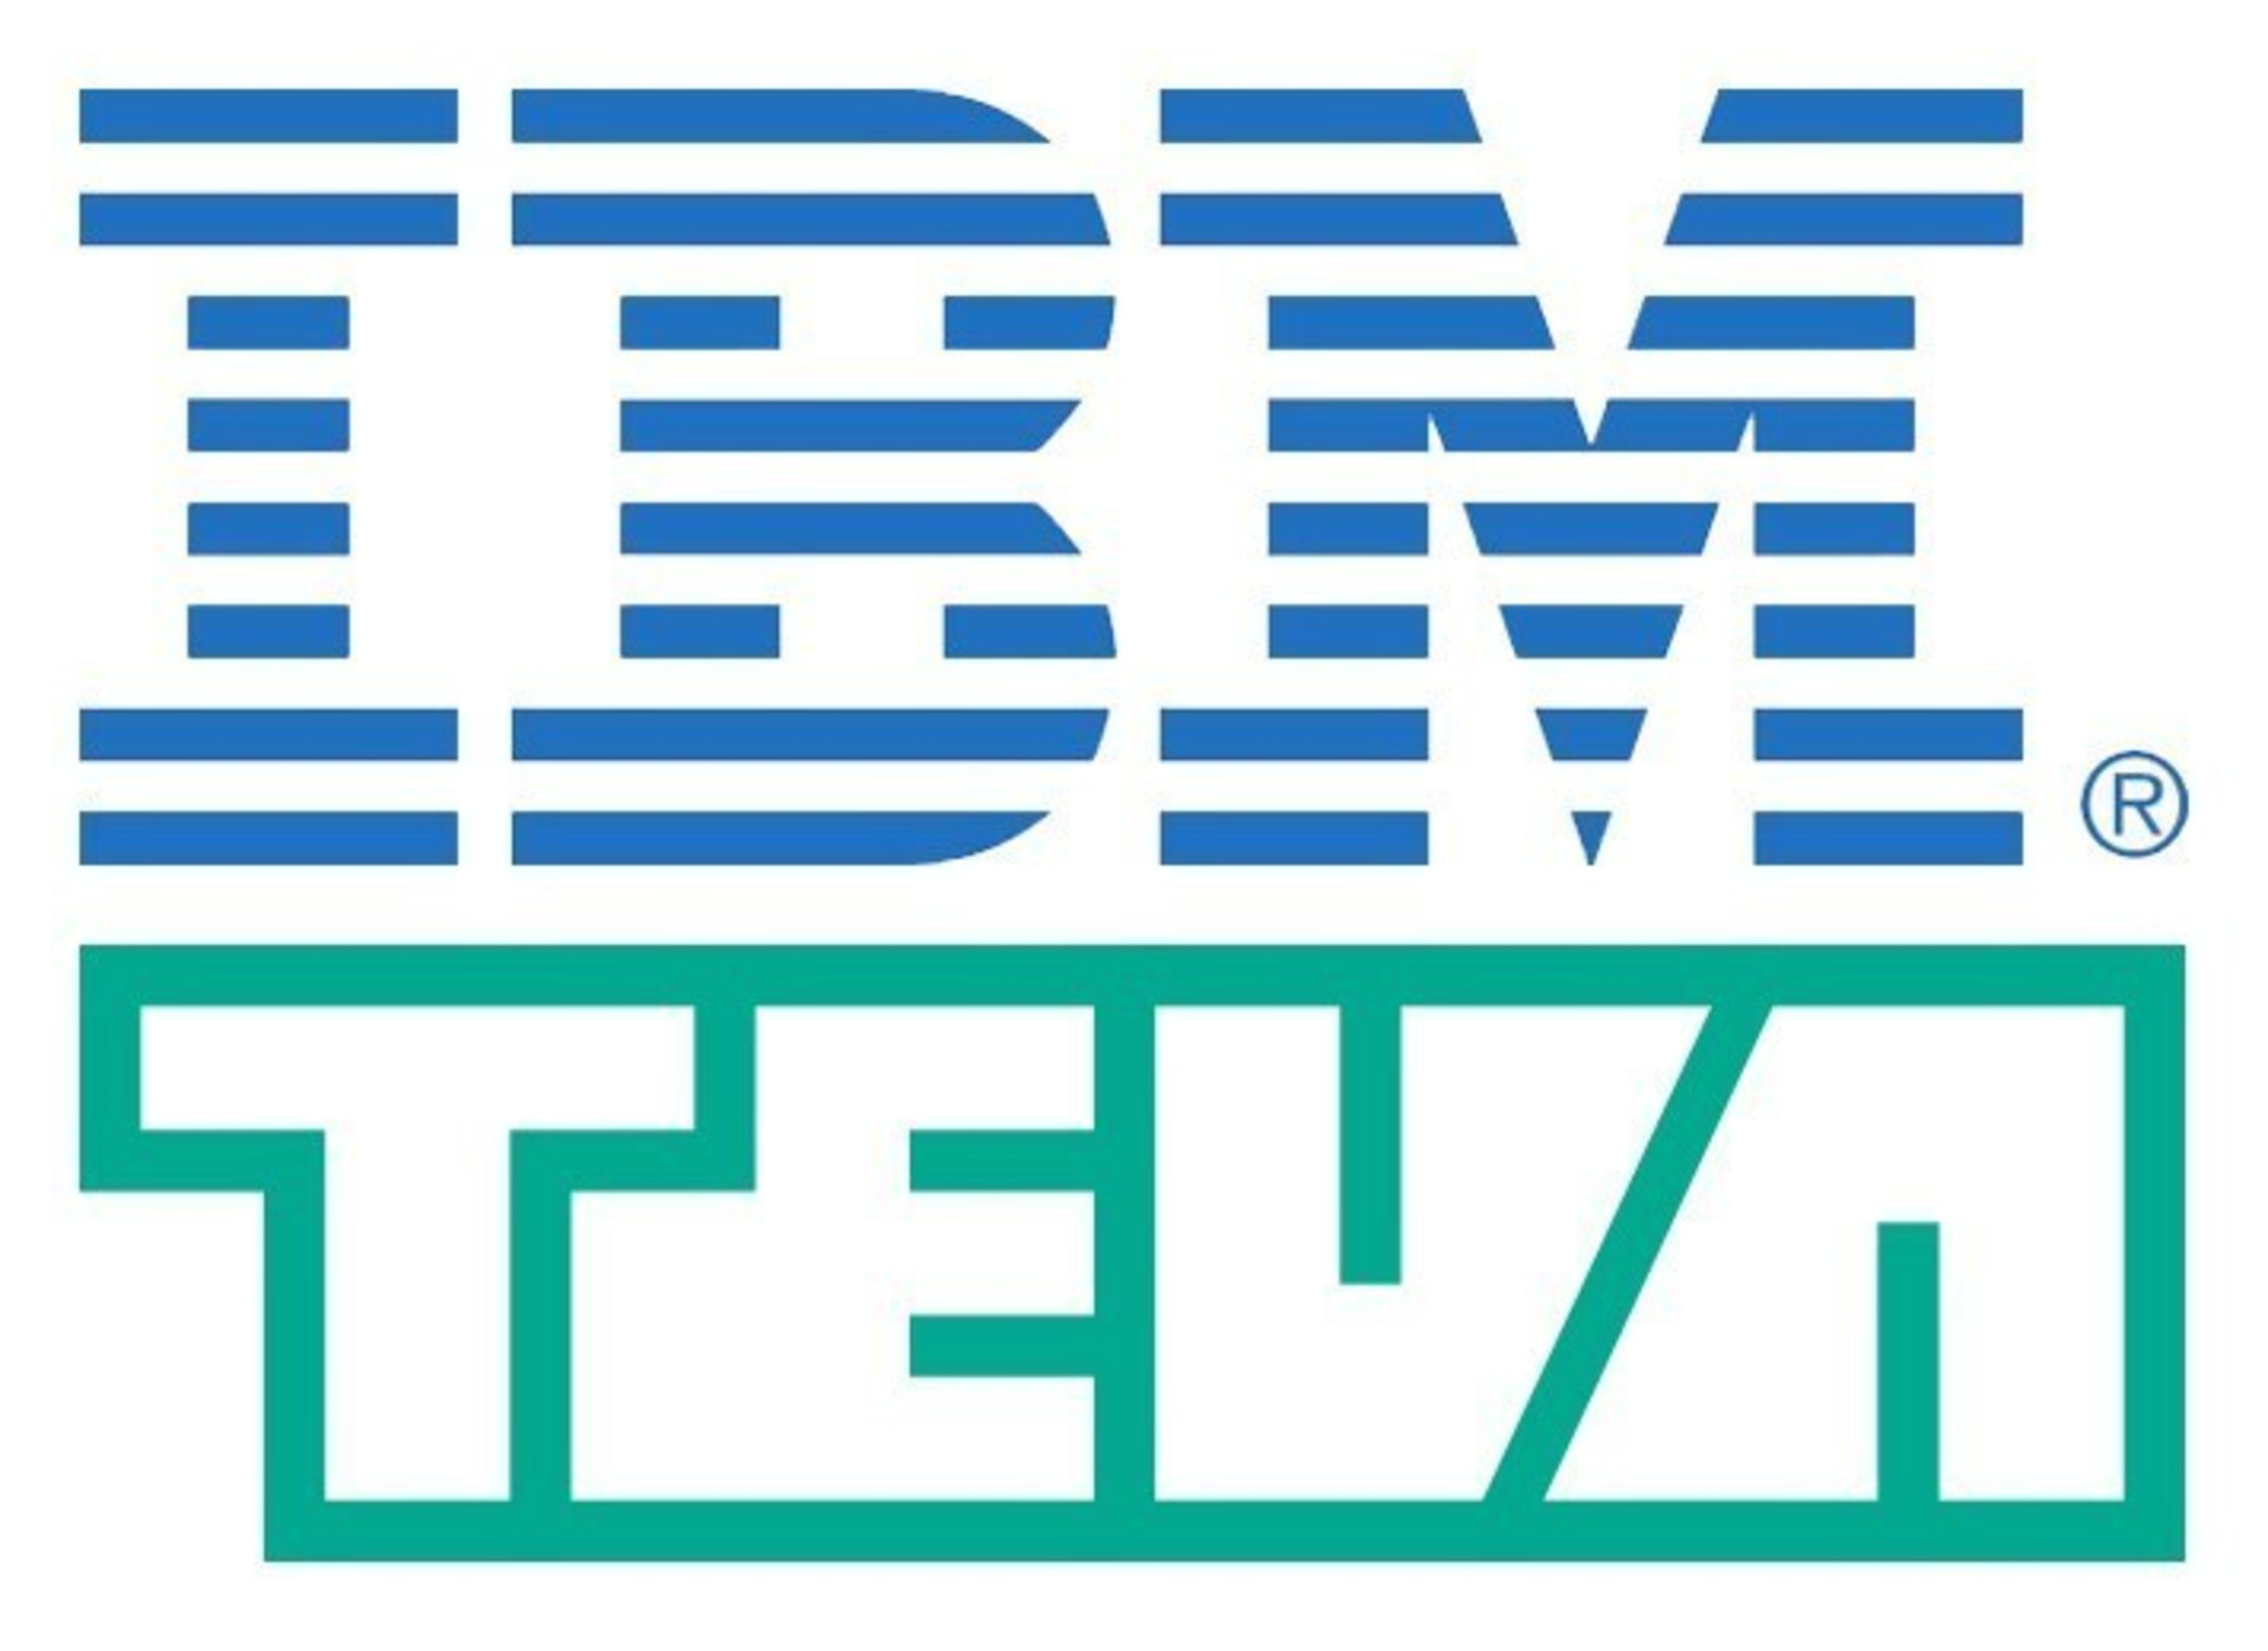 17df45a1a Teva Pharmaceuticals and IBM Expand Global Partnership to Enable Drug  Development and Chronic Disease Management with Watson